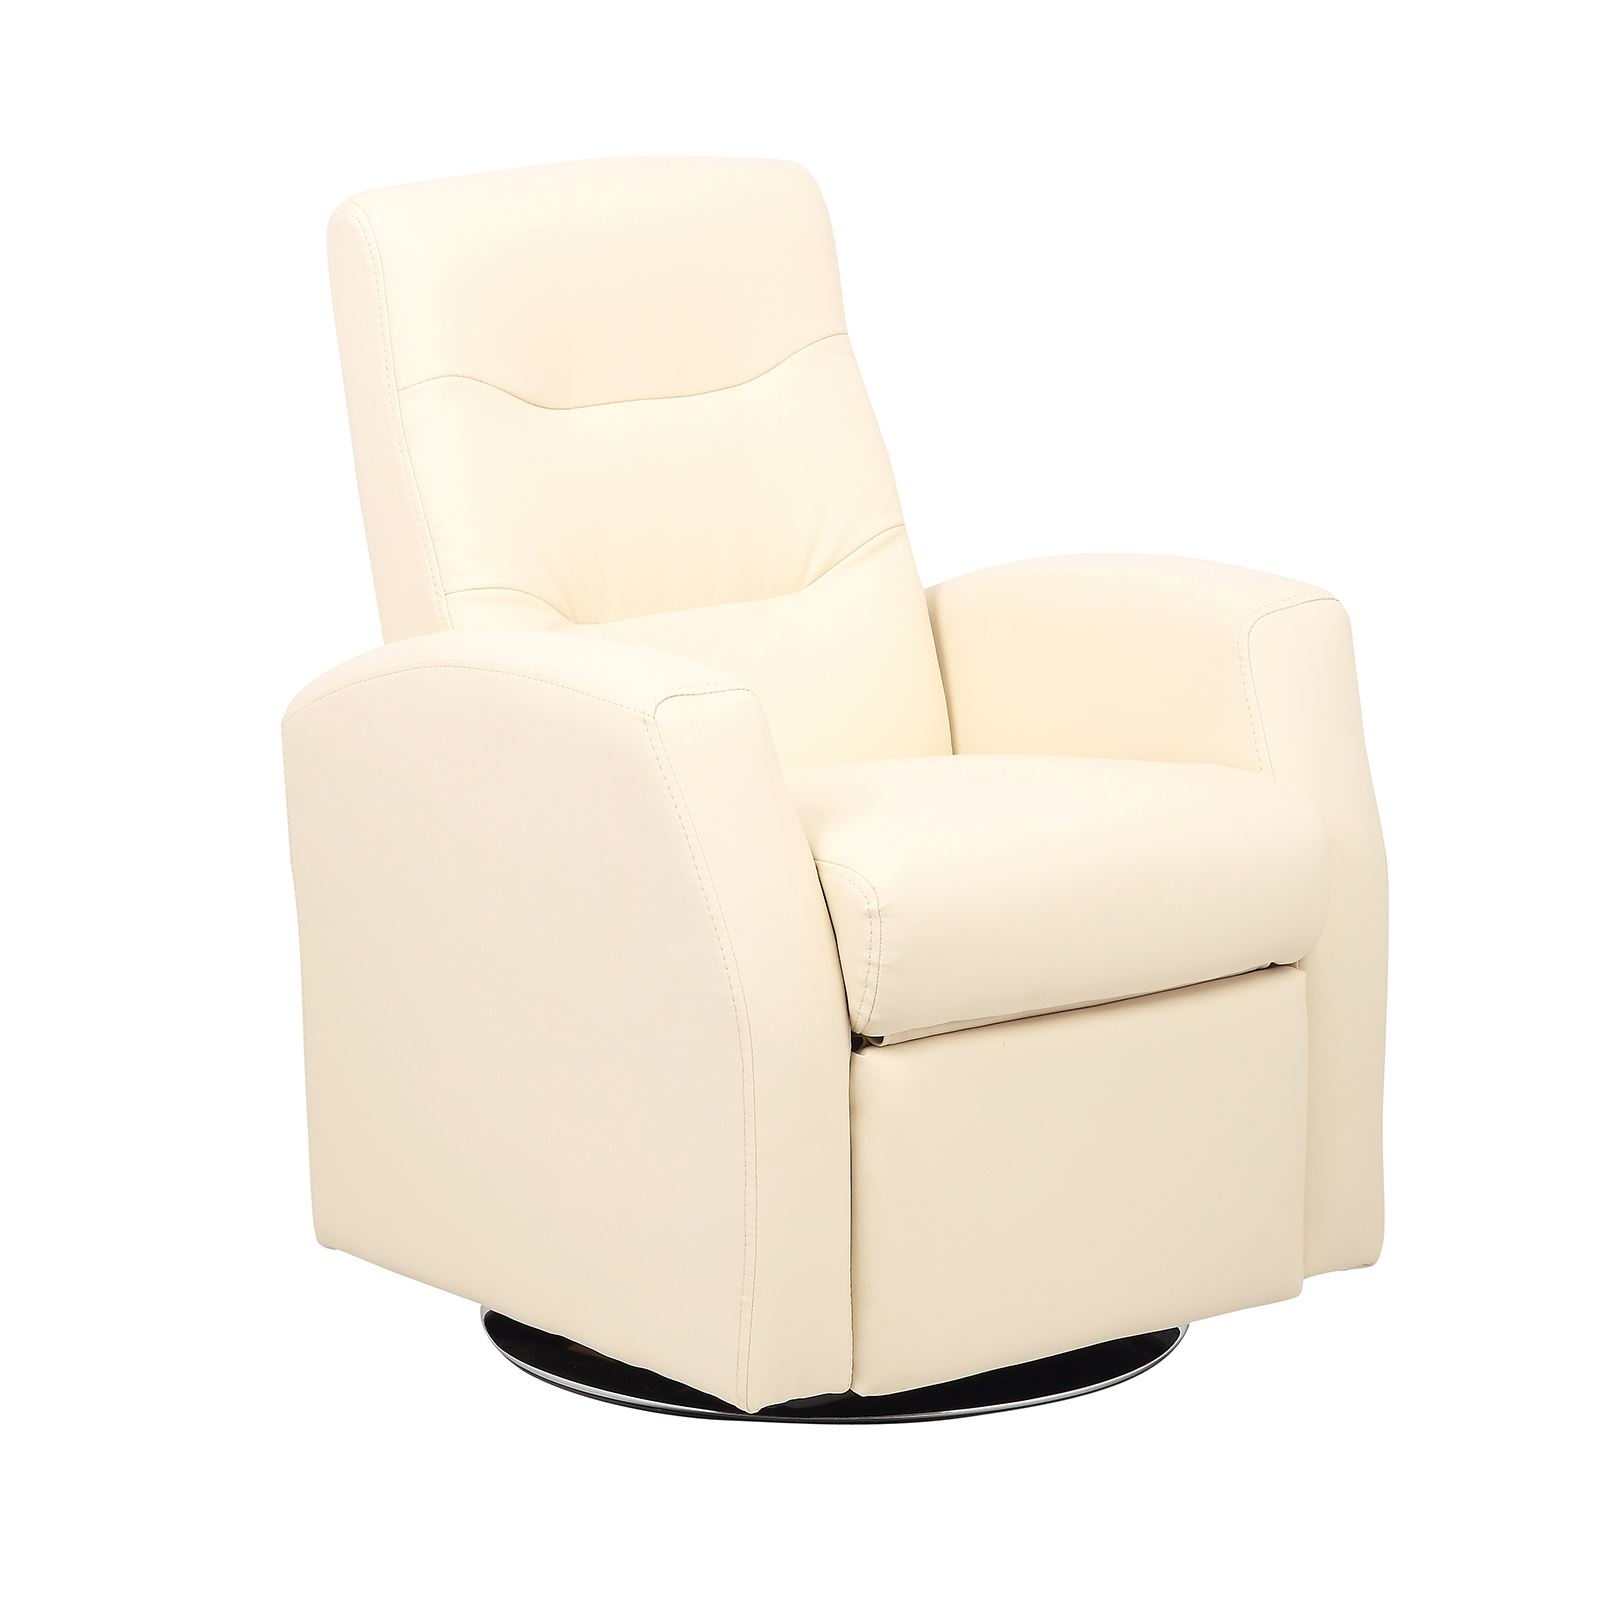 Kids reclining swivel chair living room furniture padded faux leather headrest cream about this product picture 1 of 6 picture 2 of 6 picture 3 of 6